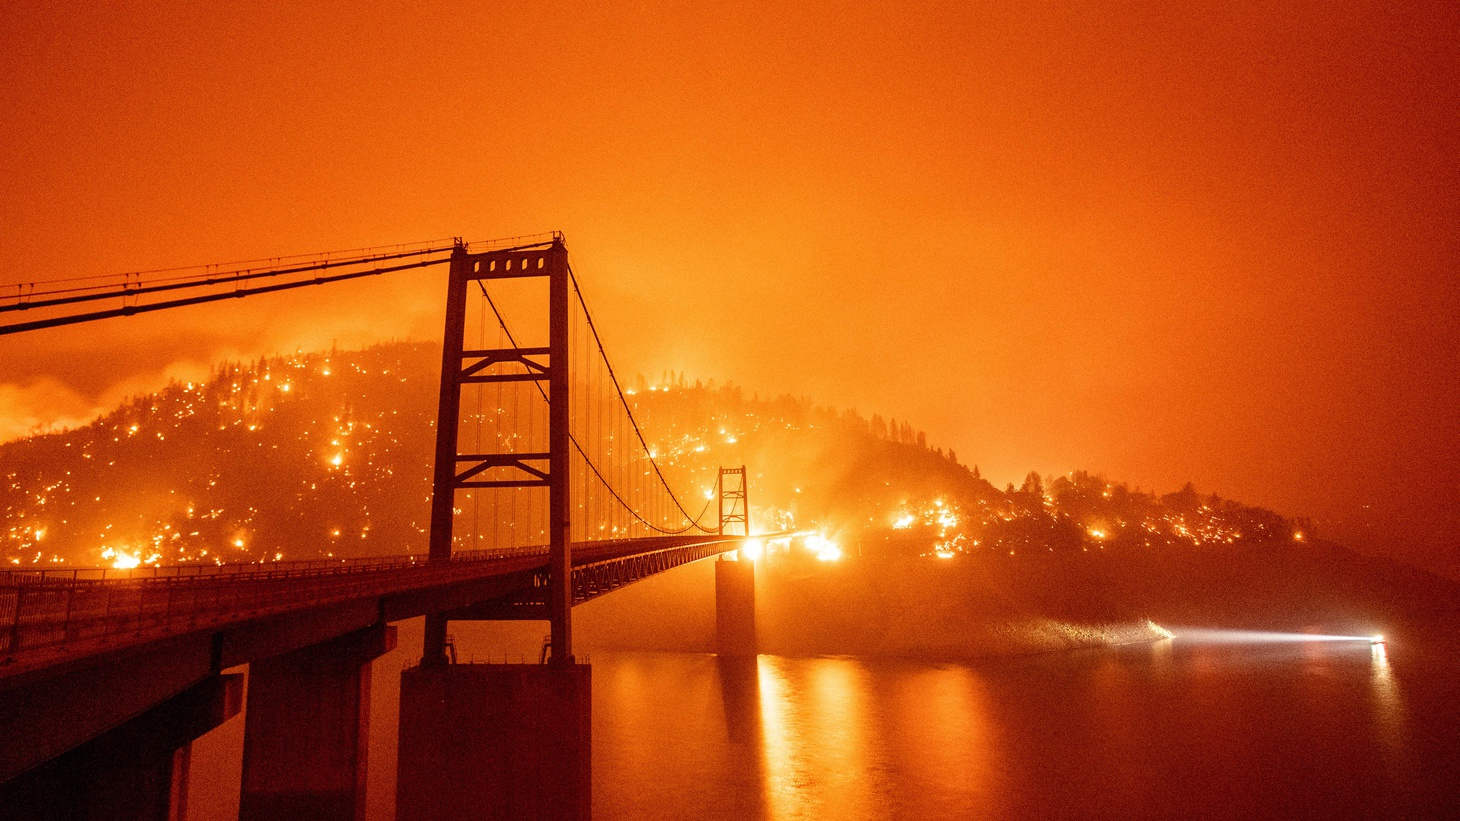 A boat motors by as the Bidwell Bar Bridge is surrounded by fire in Lake Oroville during the Bear Fire in Oroville, California on September 9, 2020. Dangerous dry winds whipped up California's record-breaking wildfires and ignited new blazes Tuesday, as hundreds were evacuated by helicopter and tens of thousands were plunged into darkness by power outages across the western United States.